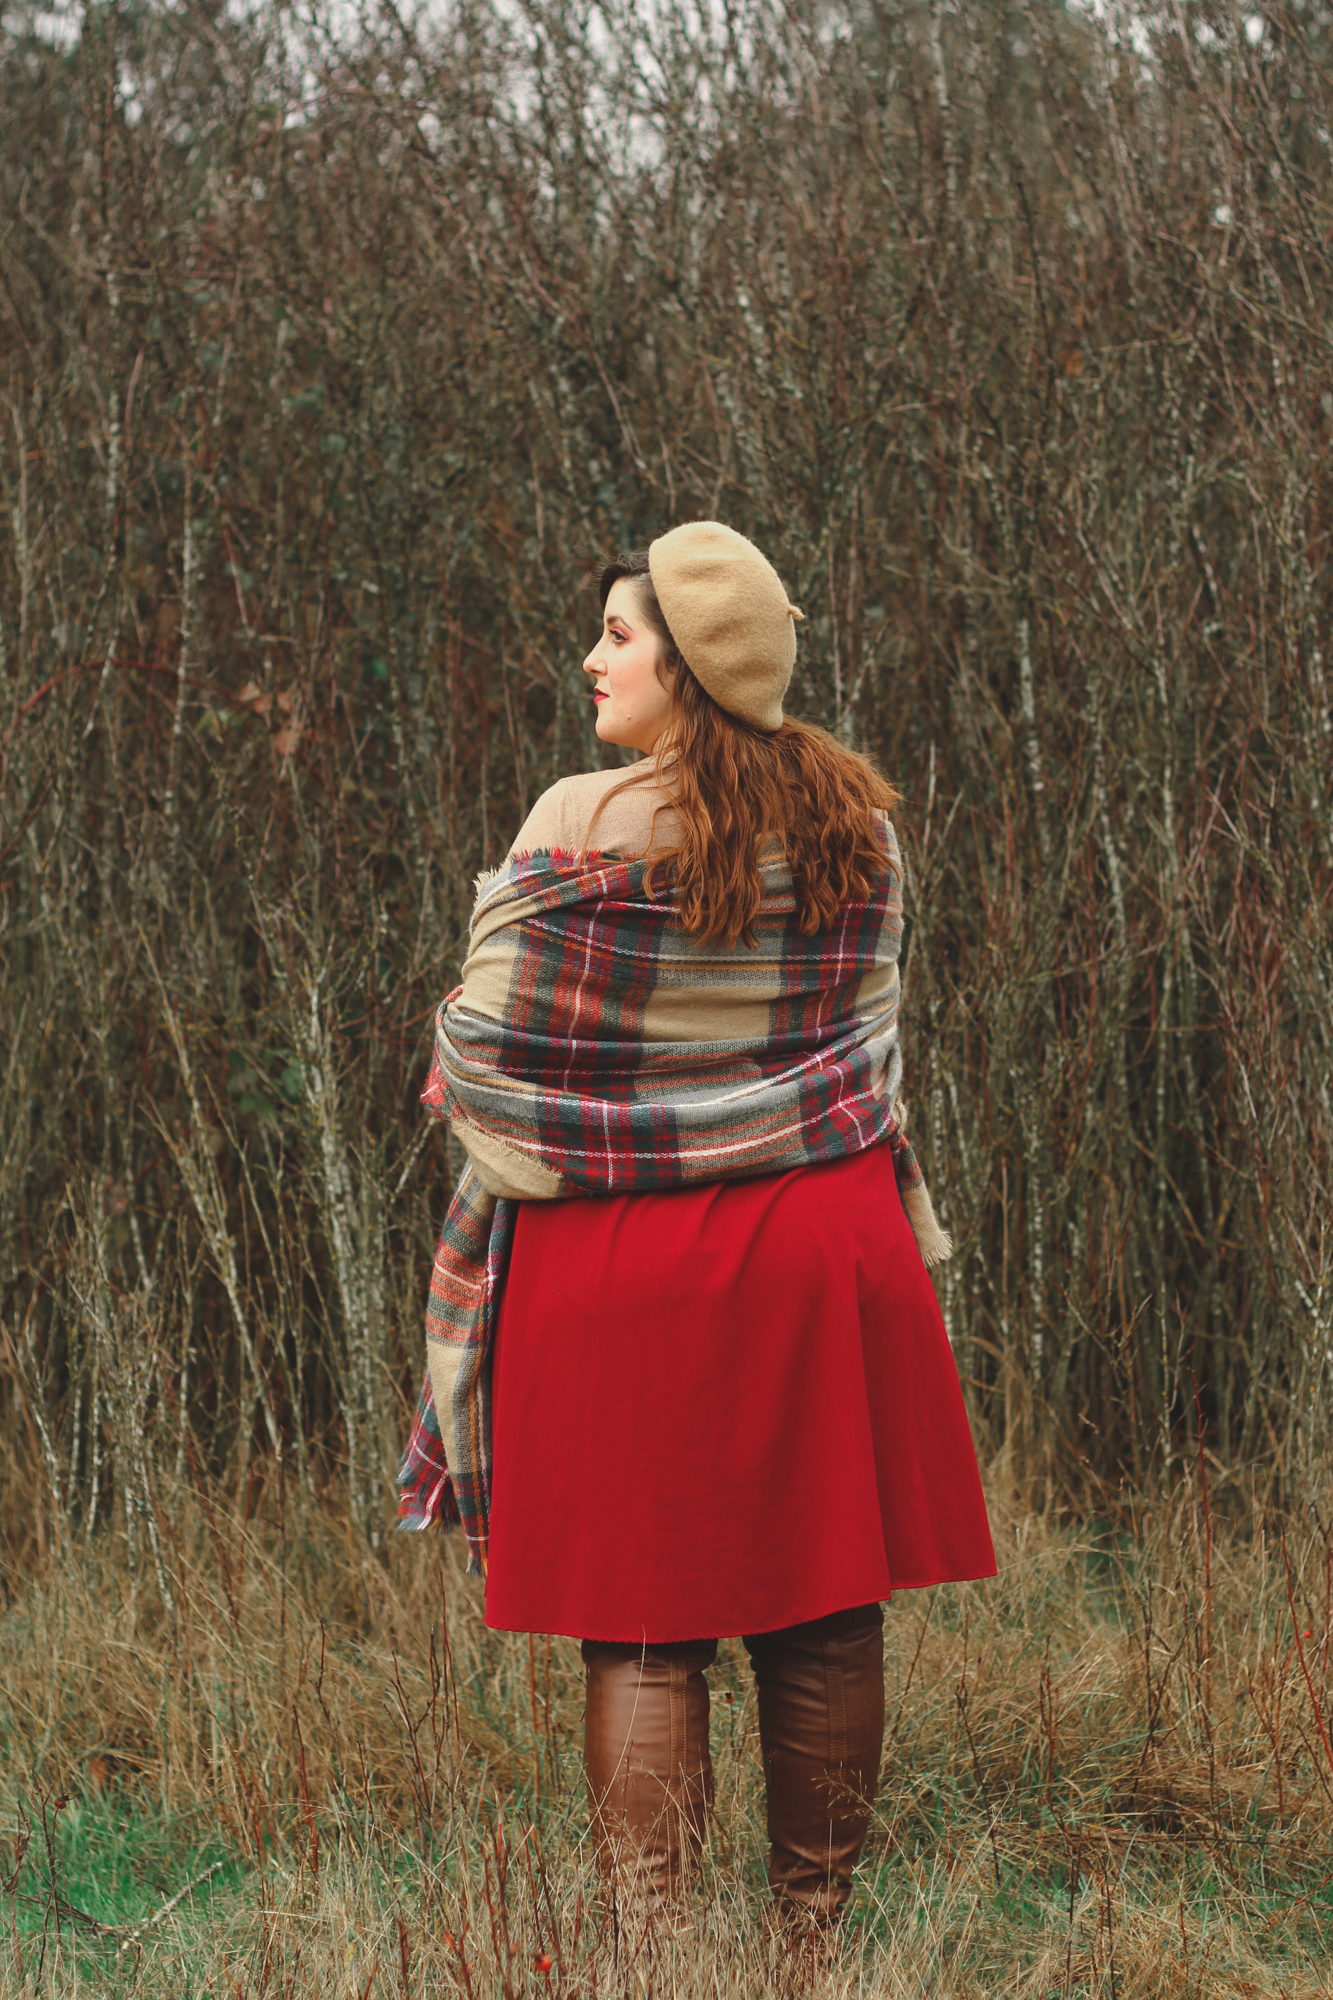 vintage-inspired maternity outfit featuring blanket scarf